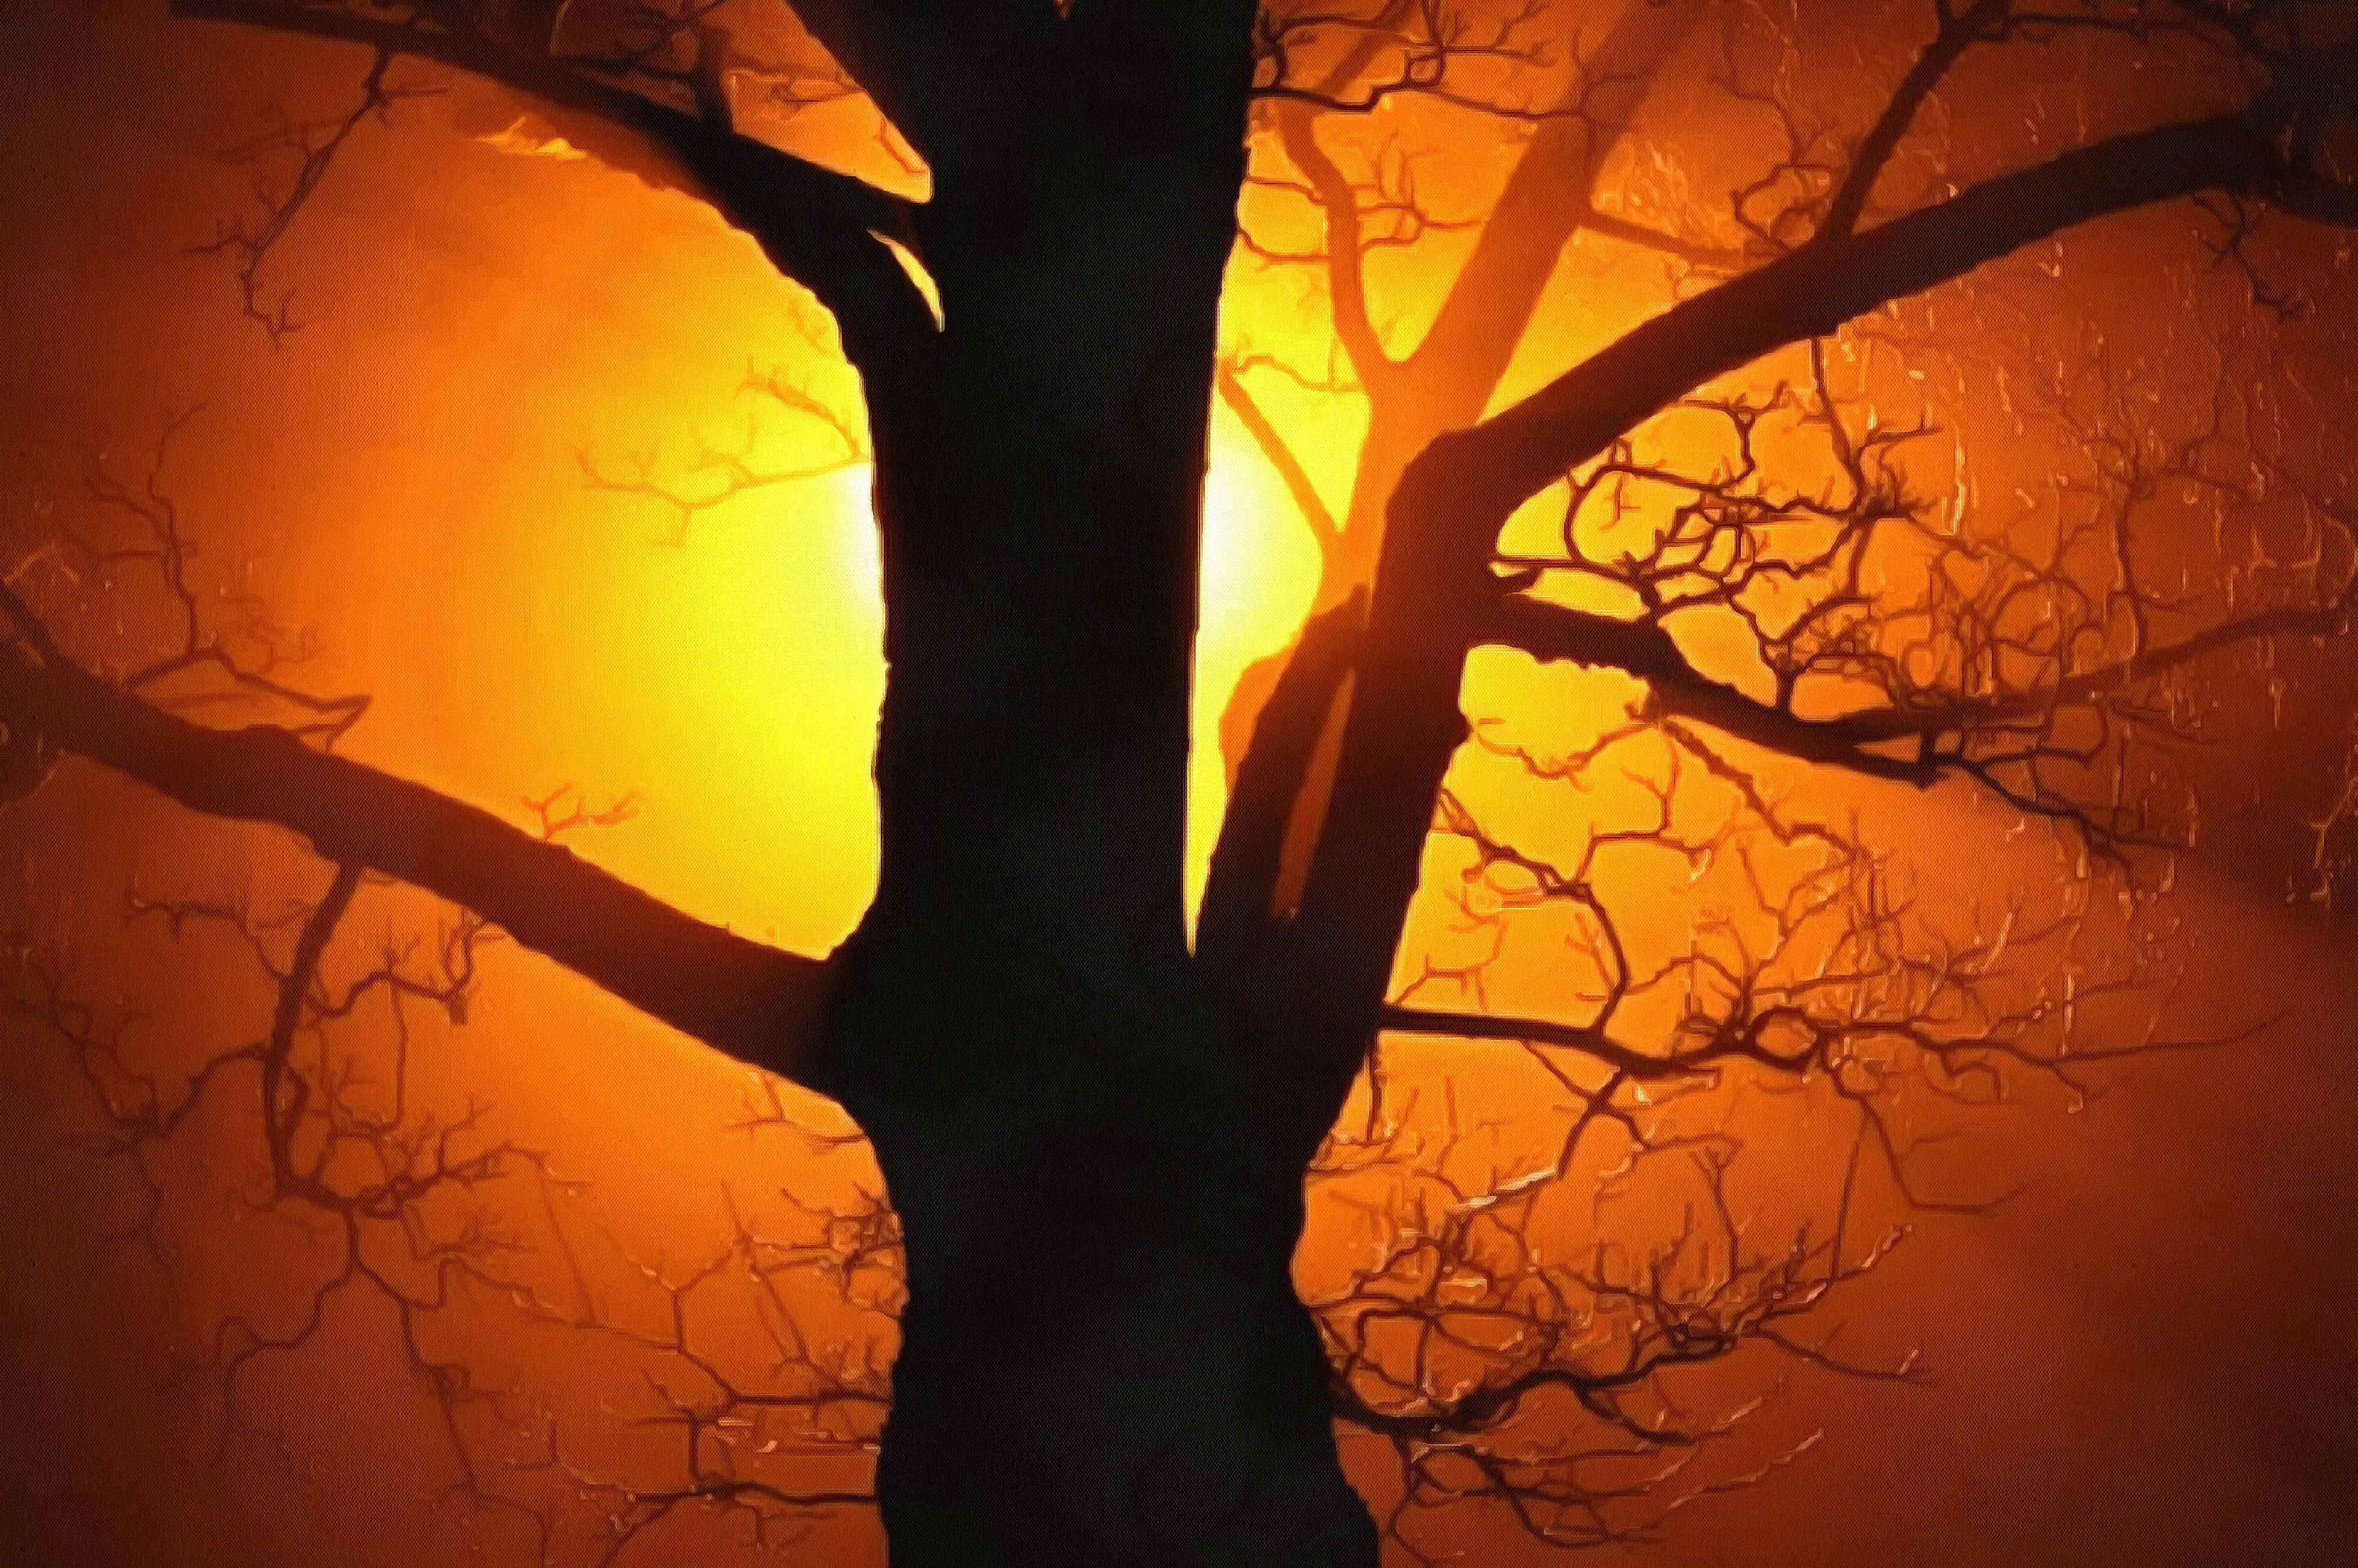 nature, beautiful, night, branch, light, dark, , silhouette, old, color, bright, golden, effect, tree, yellow orange, abstract, background, ray, fog, black, stock free images, free illustrtions